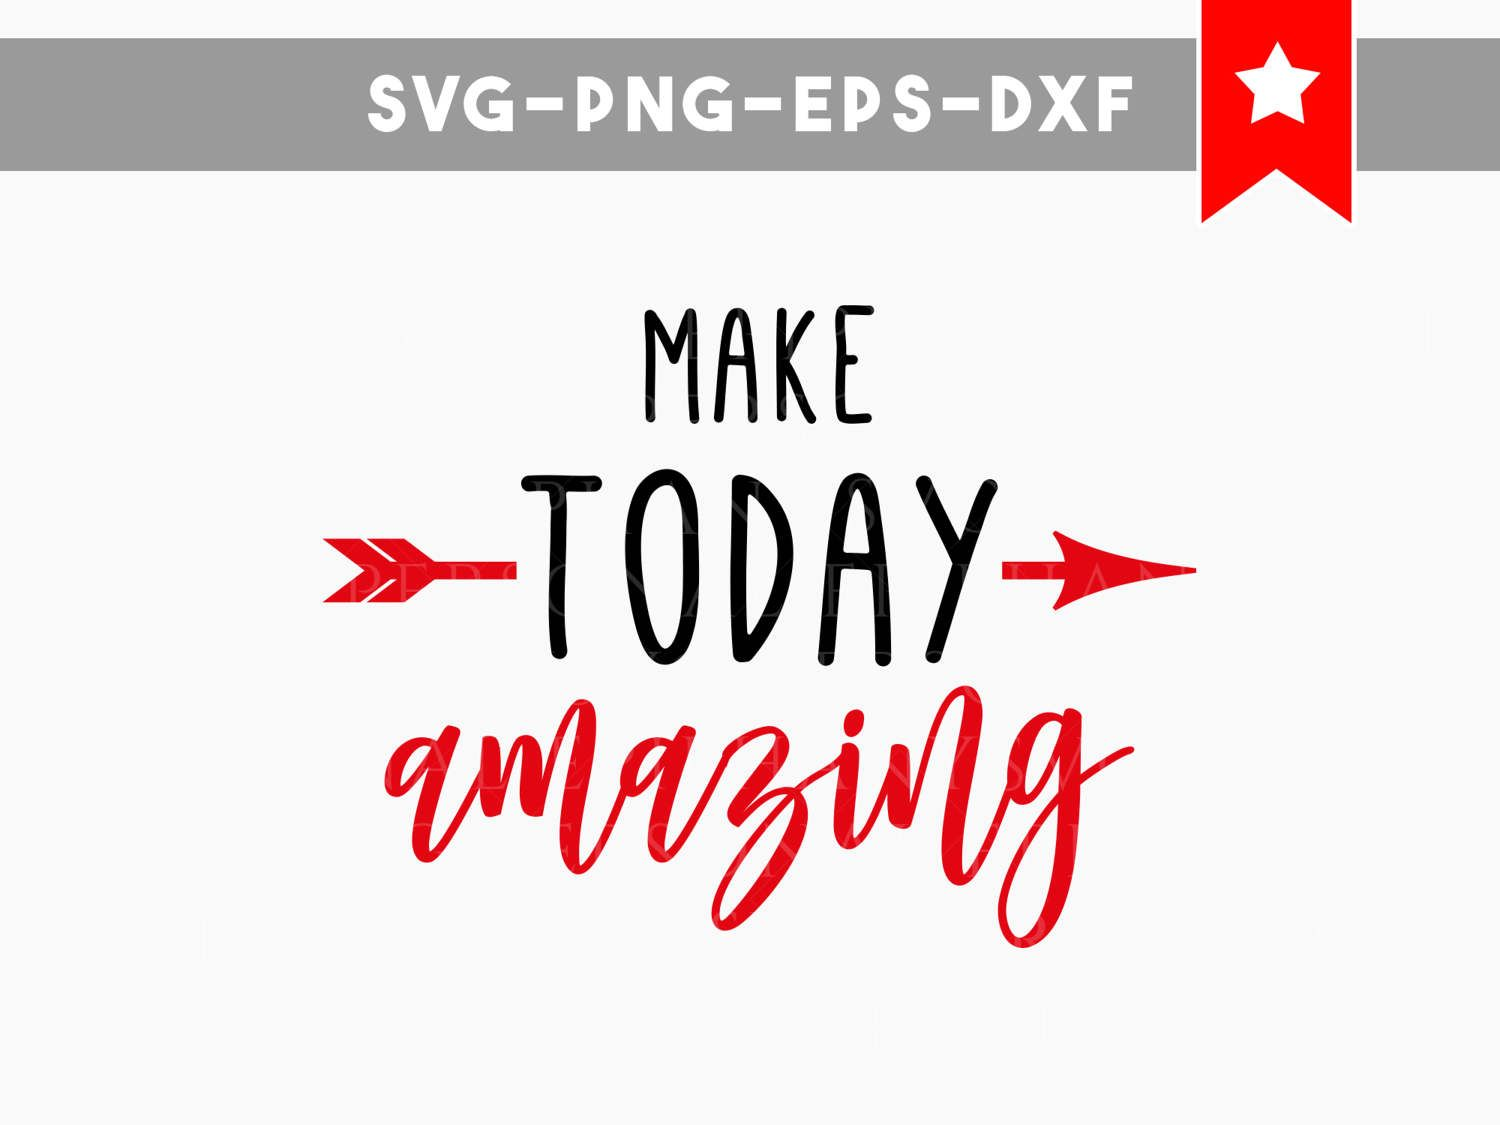 Commercial Quotes Make Today Amazing Svg Motivational Quotes Svg Commercial Use